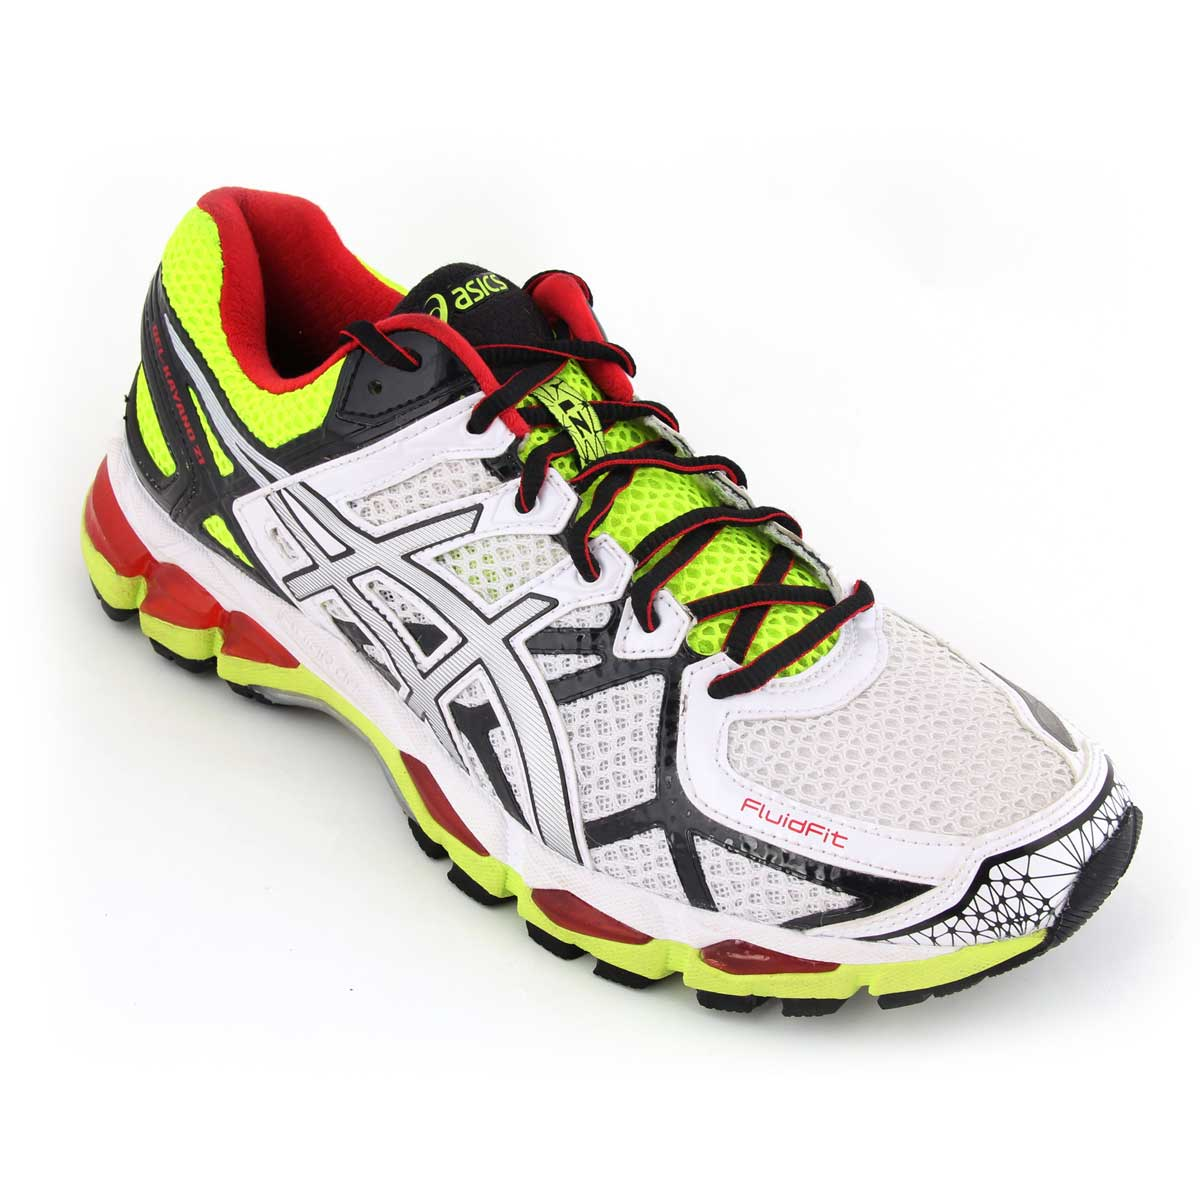 881f28cd7a68 Buy Asics Gel-Kayano 21 Men s Running Shoes (Lightning) Online